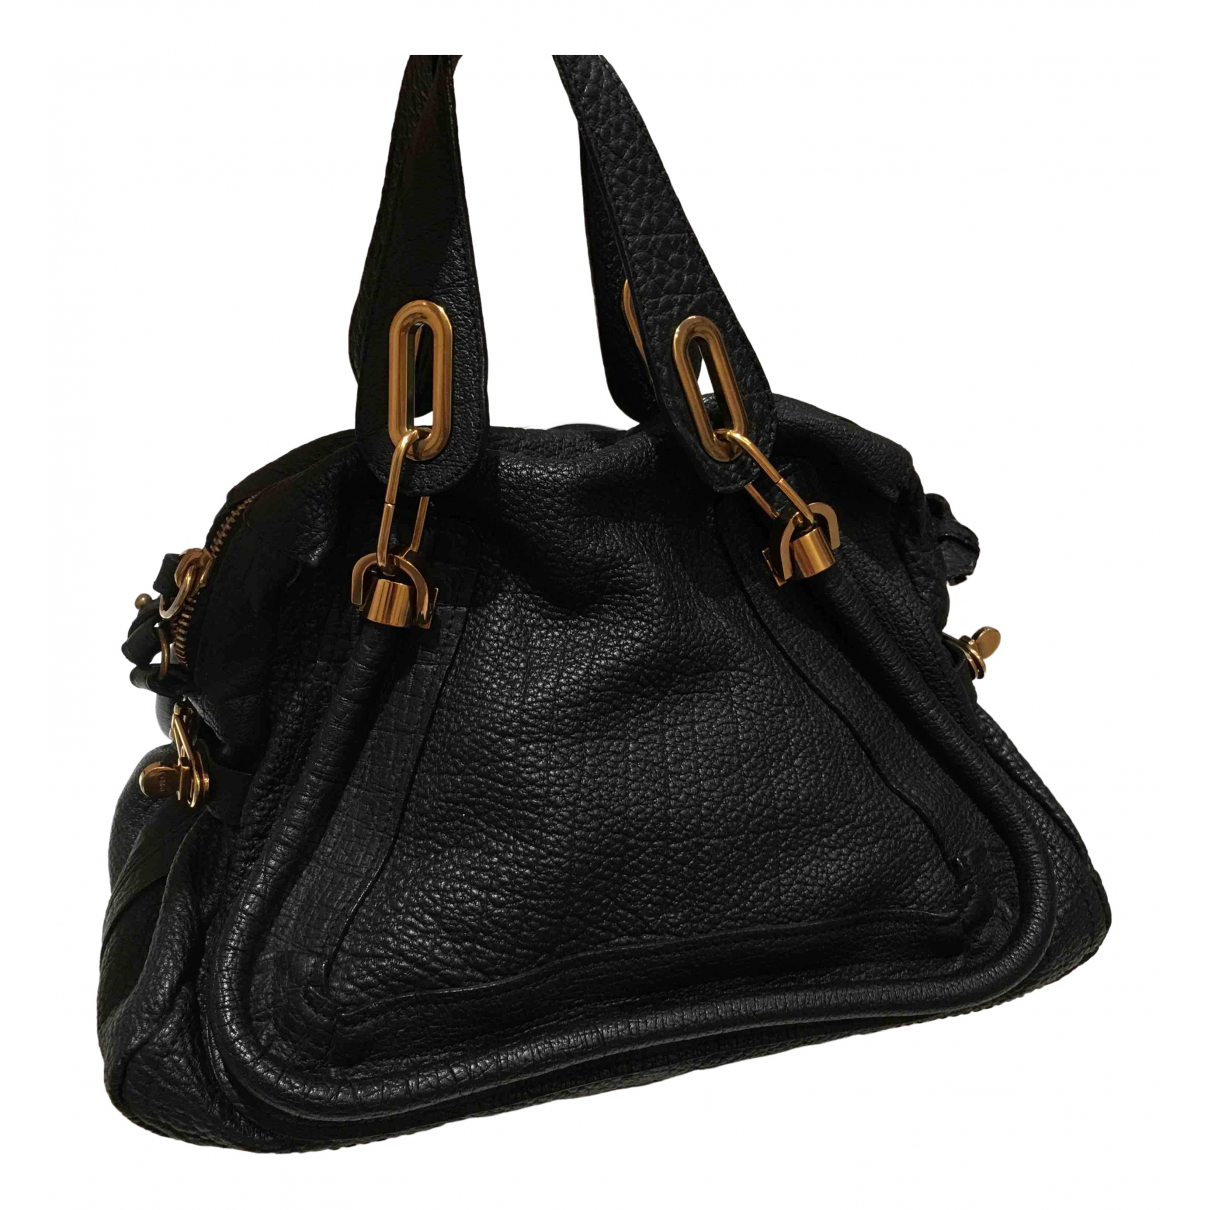 Chloé Paraty Black Leather handbag for Women \N